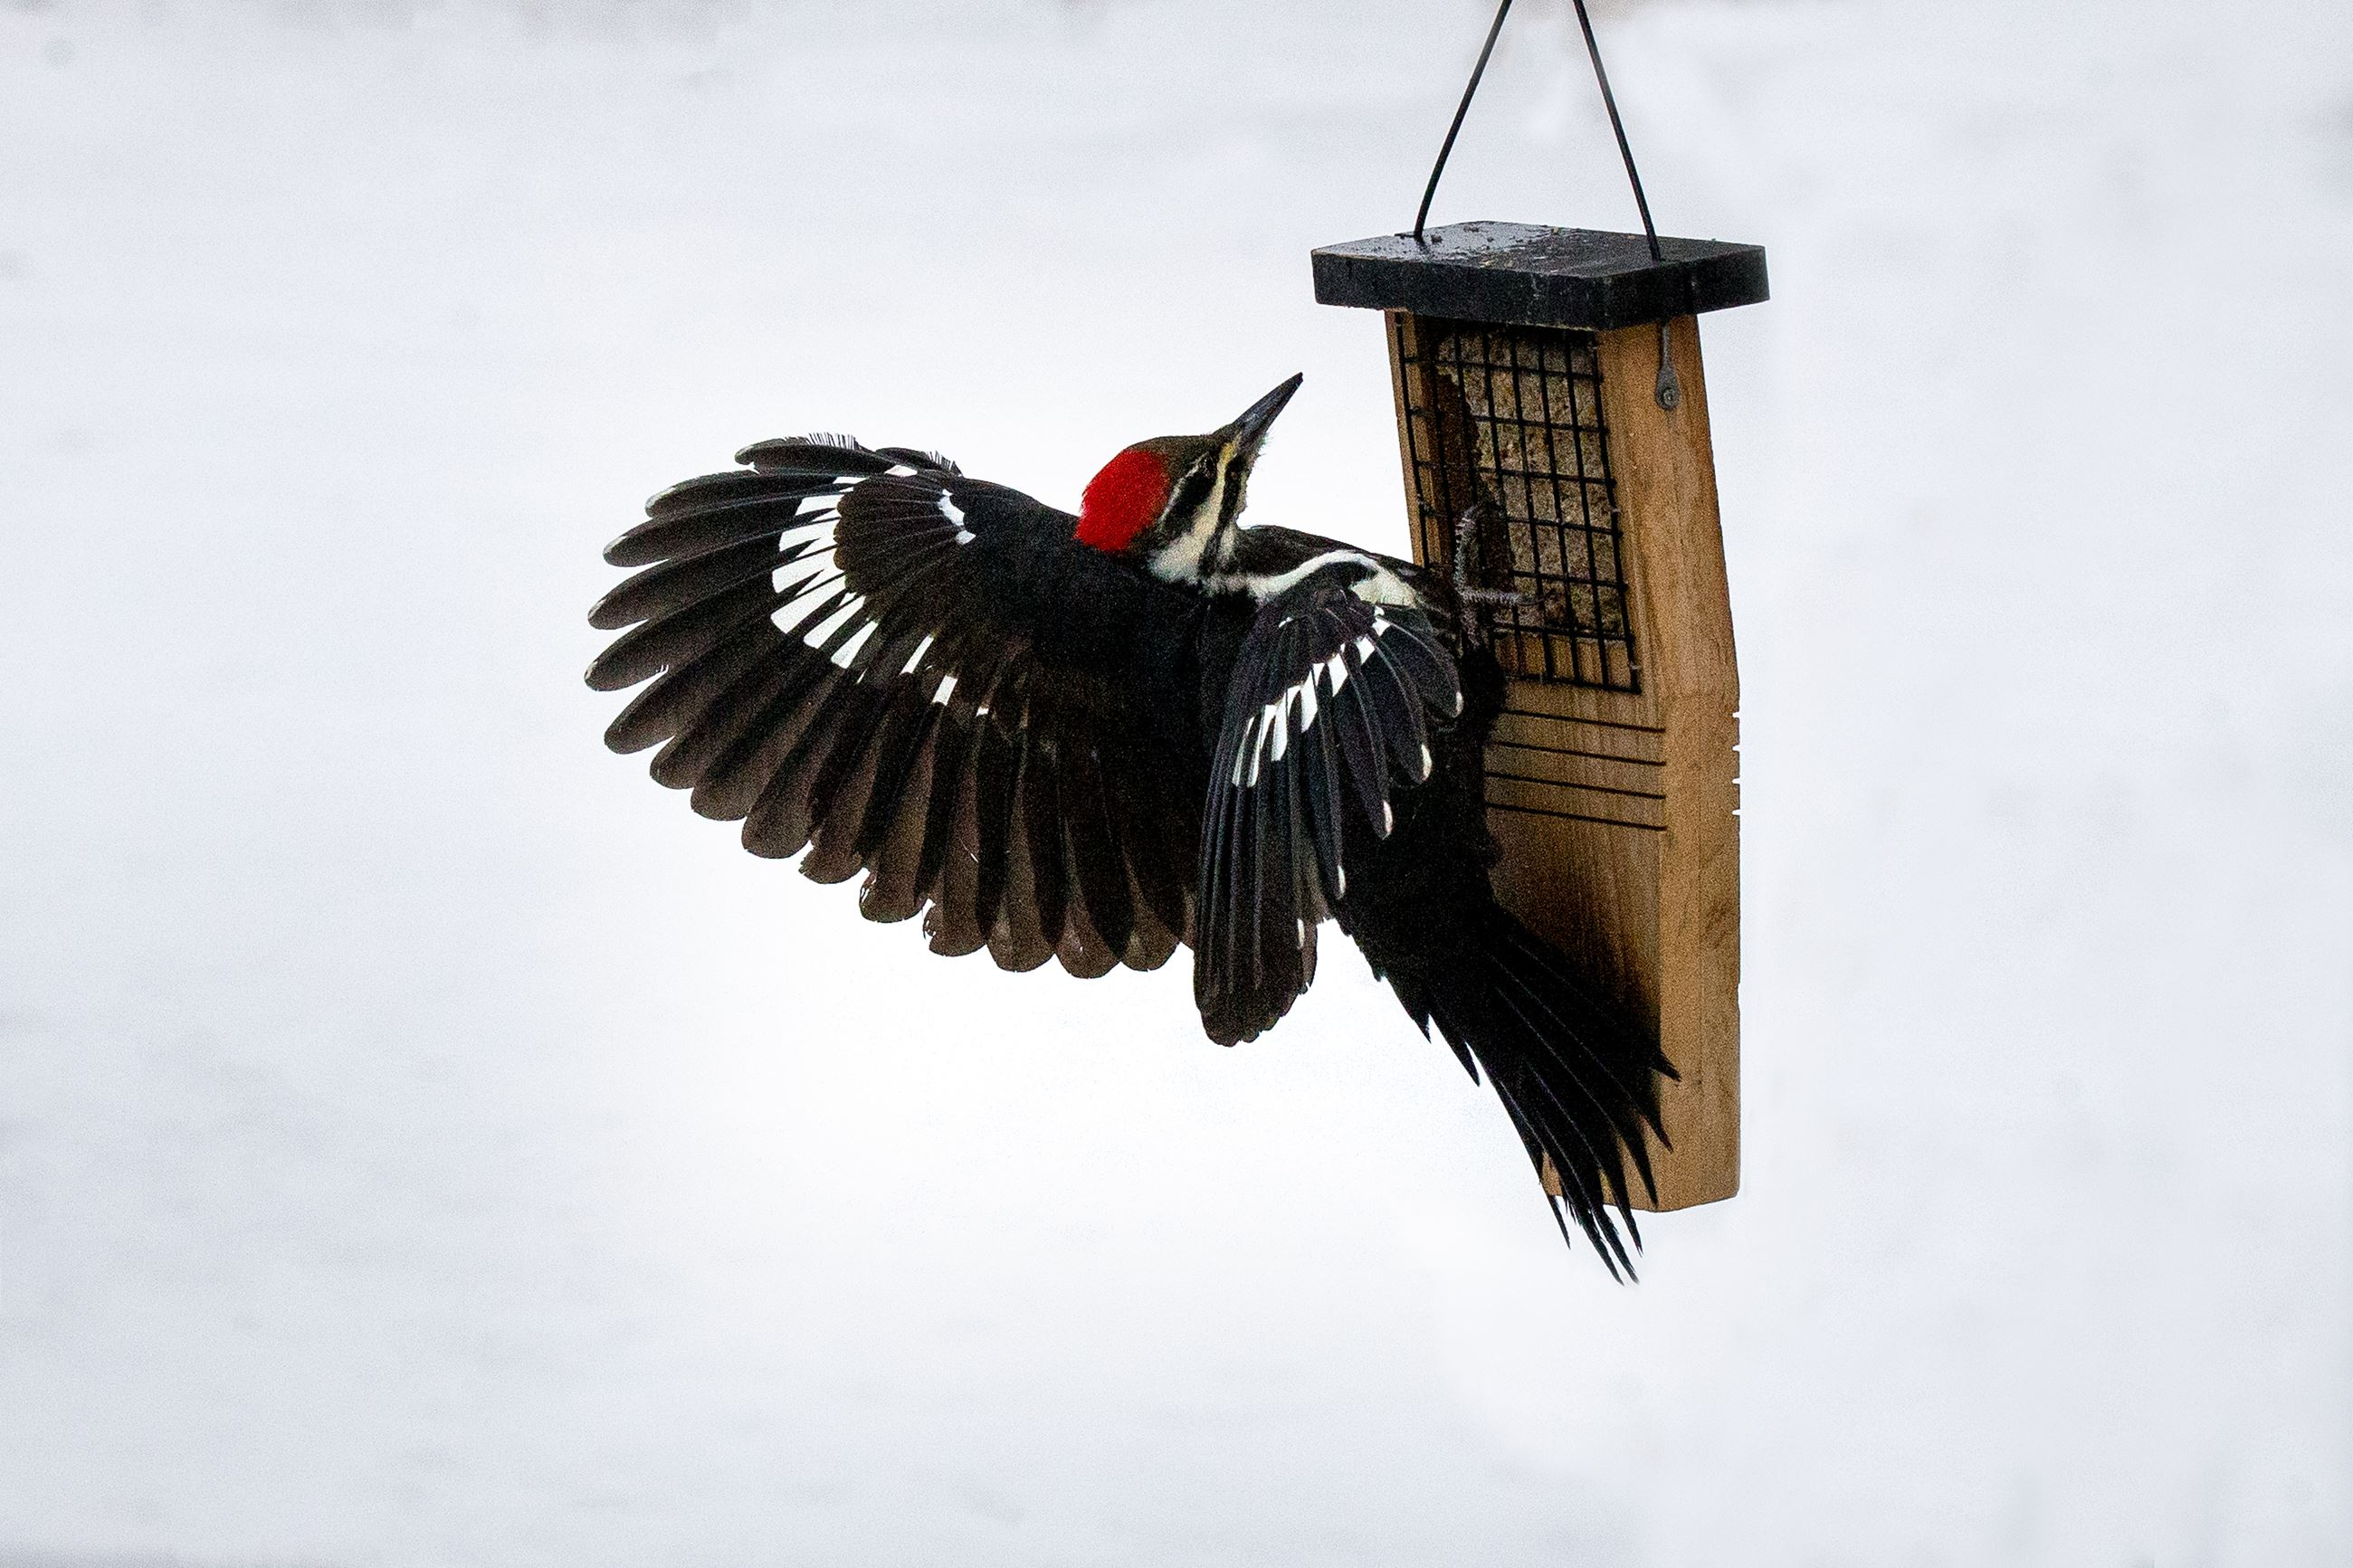 Woodpecker at bird feeder.